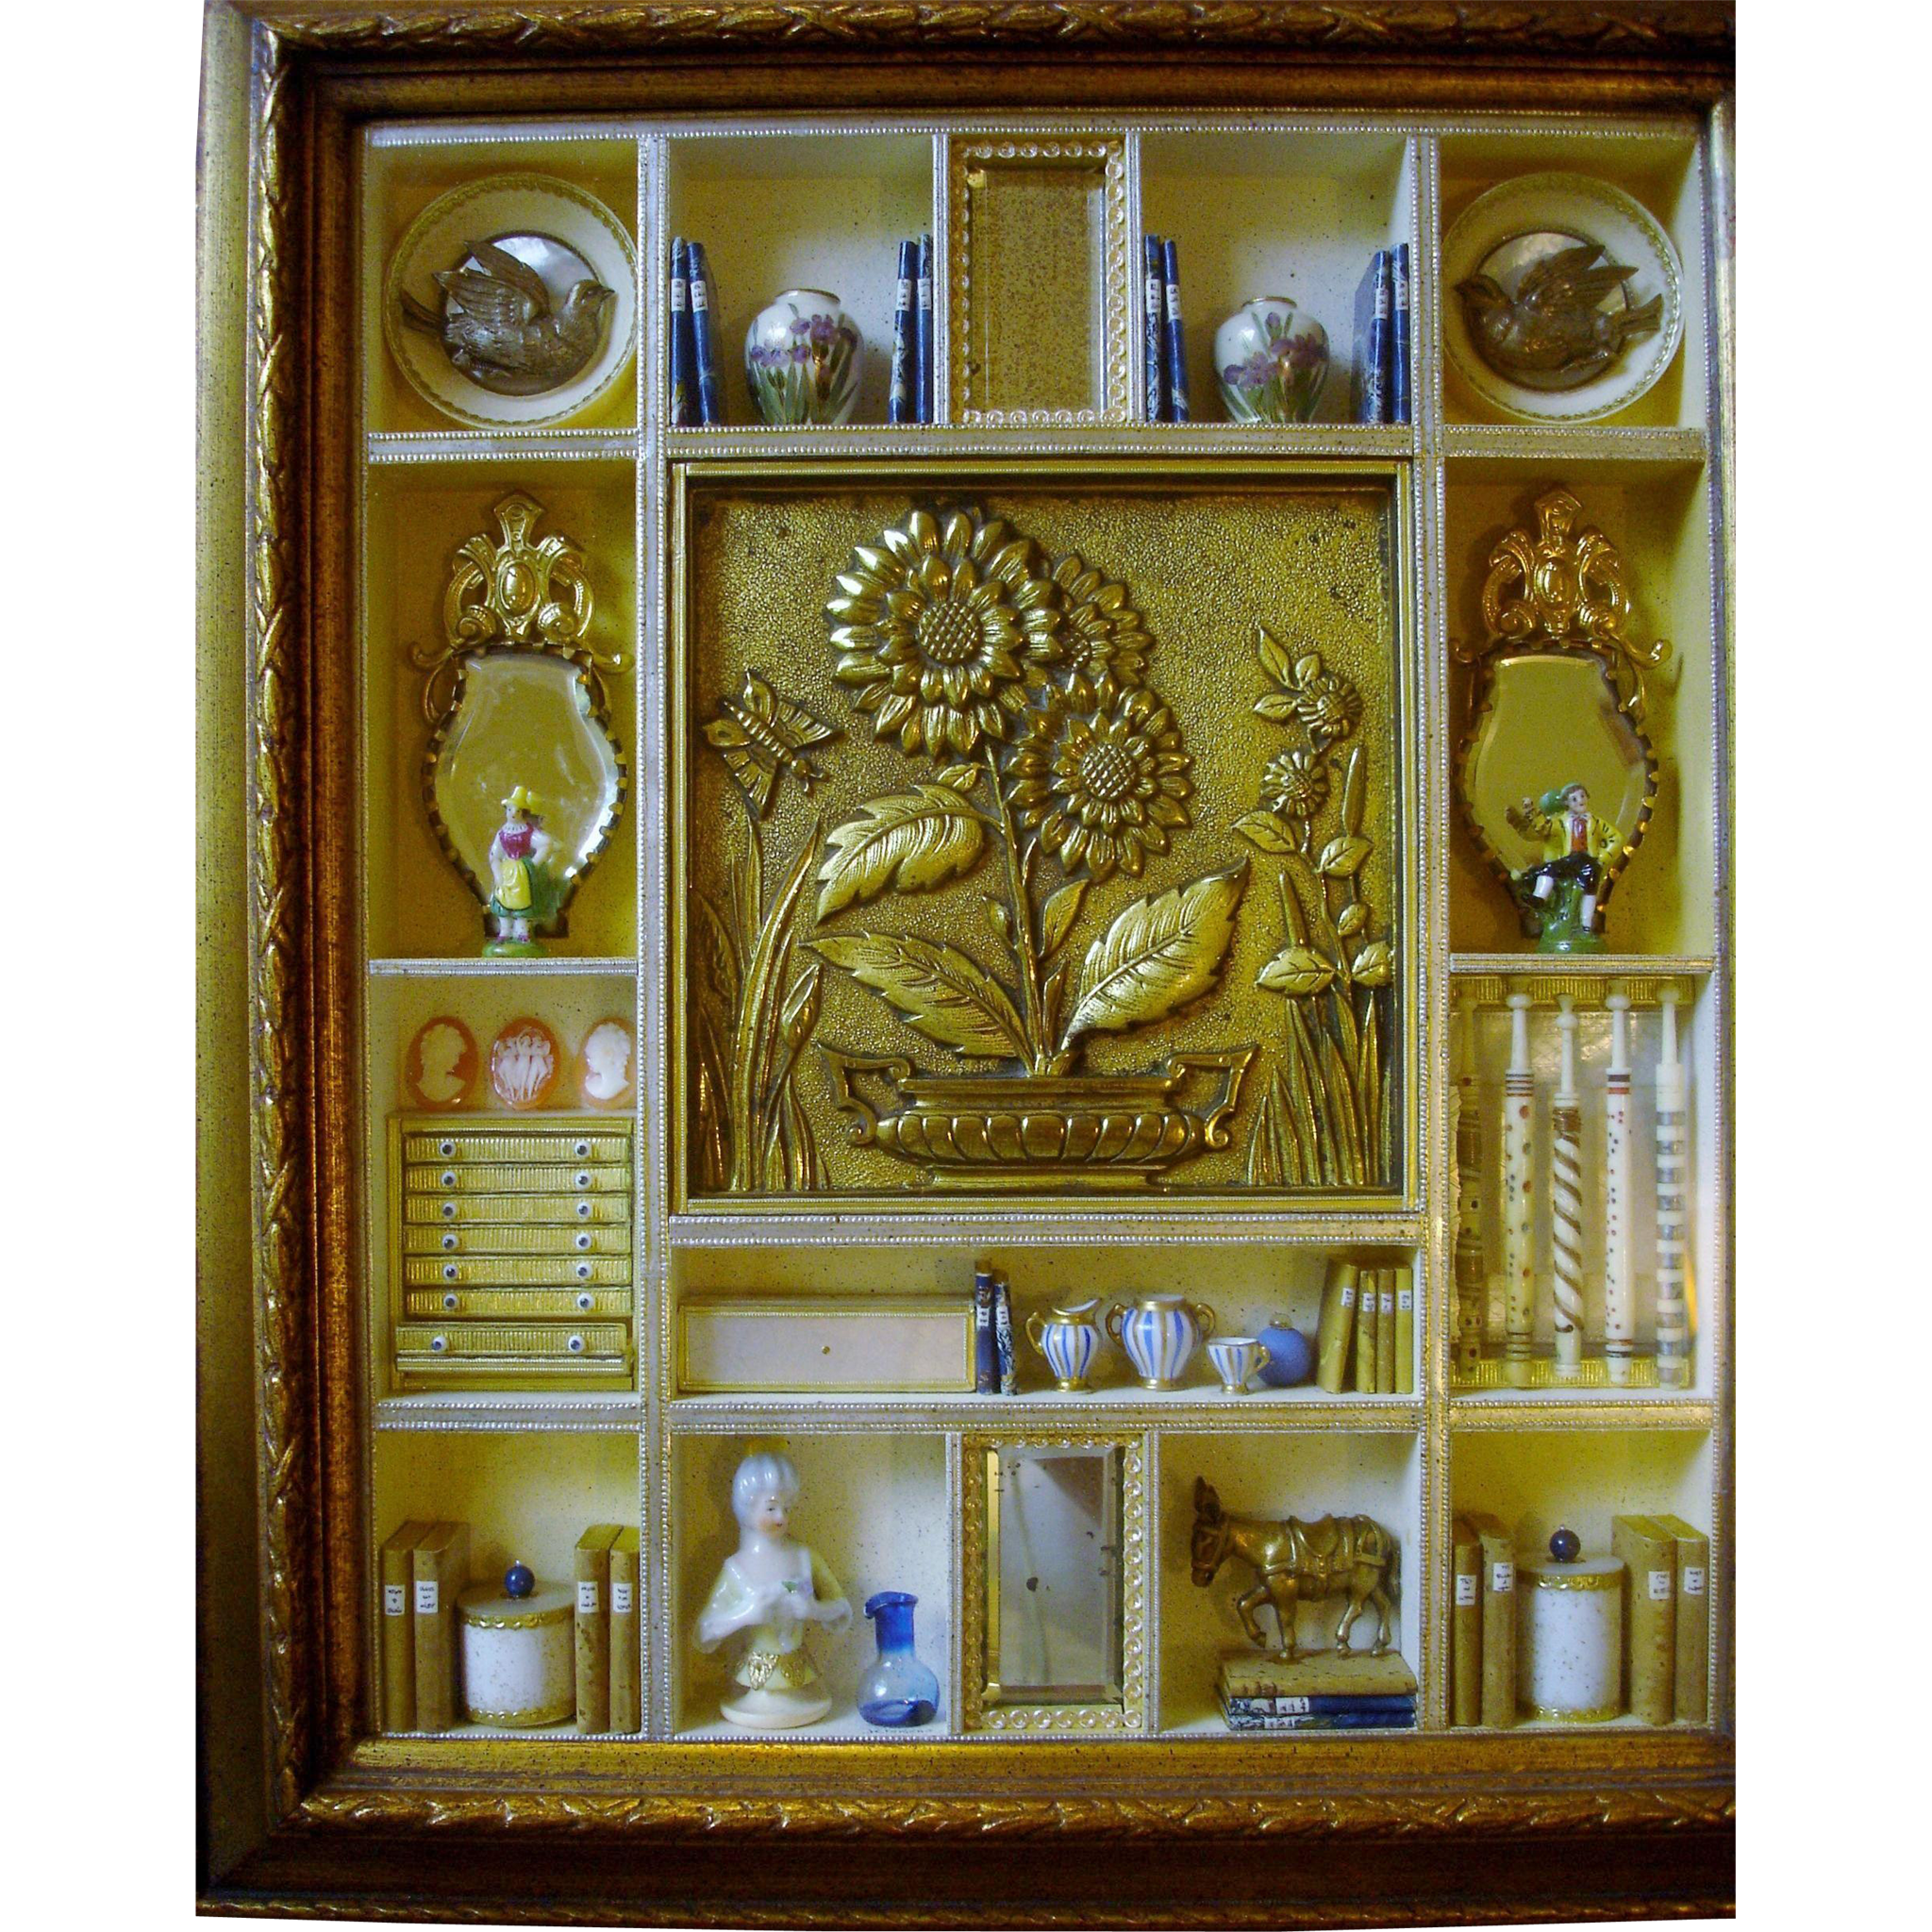 Extremely Rare Vintage Shadow Box with 19th Century European Miniatures - Red Tag Sale Item